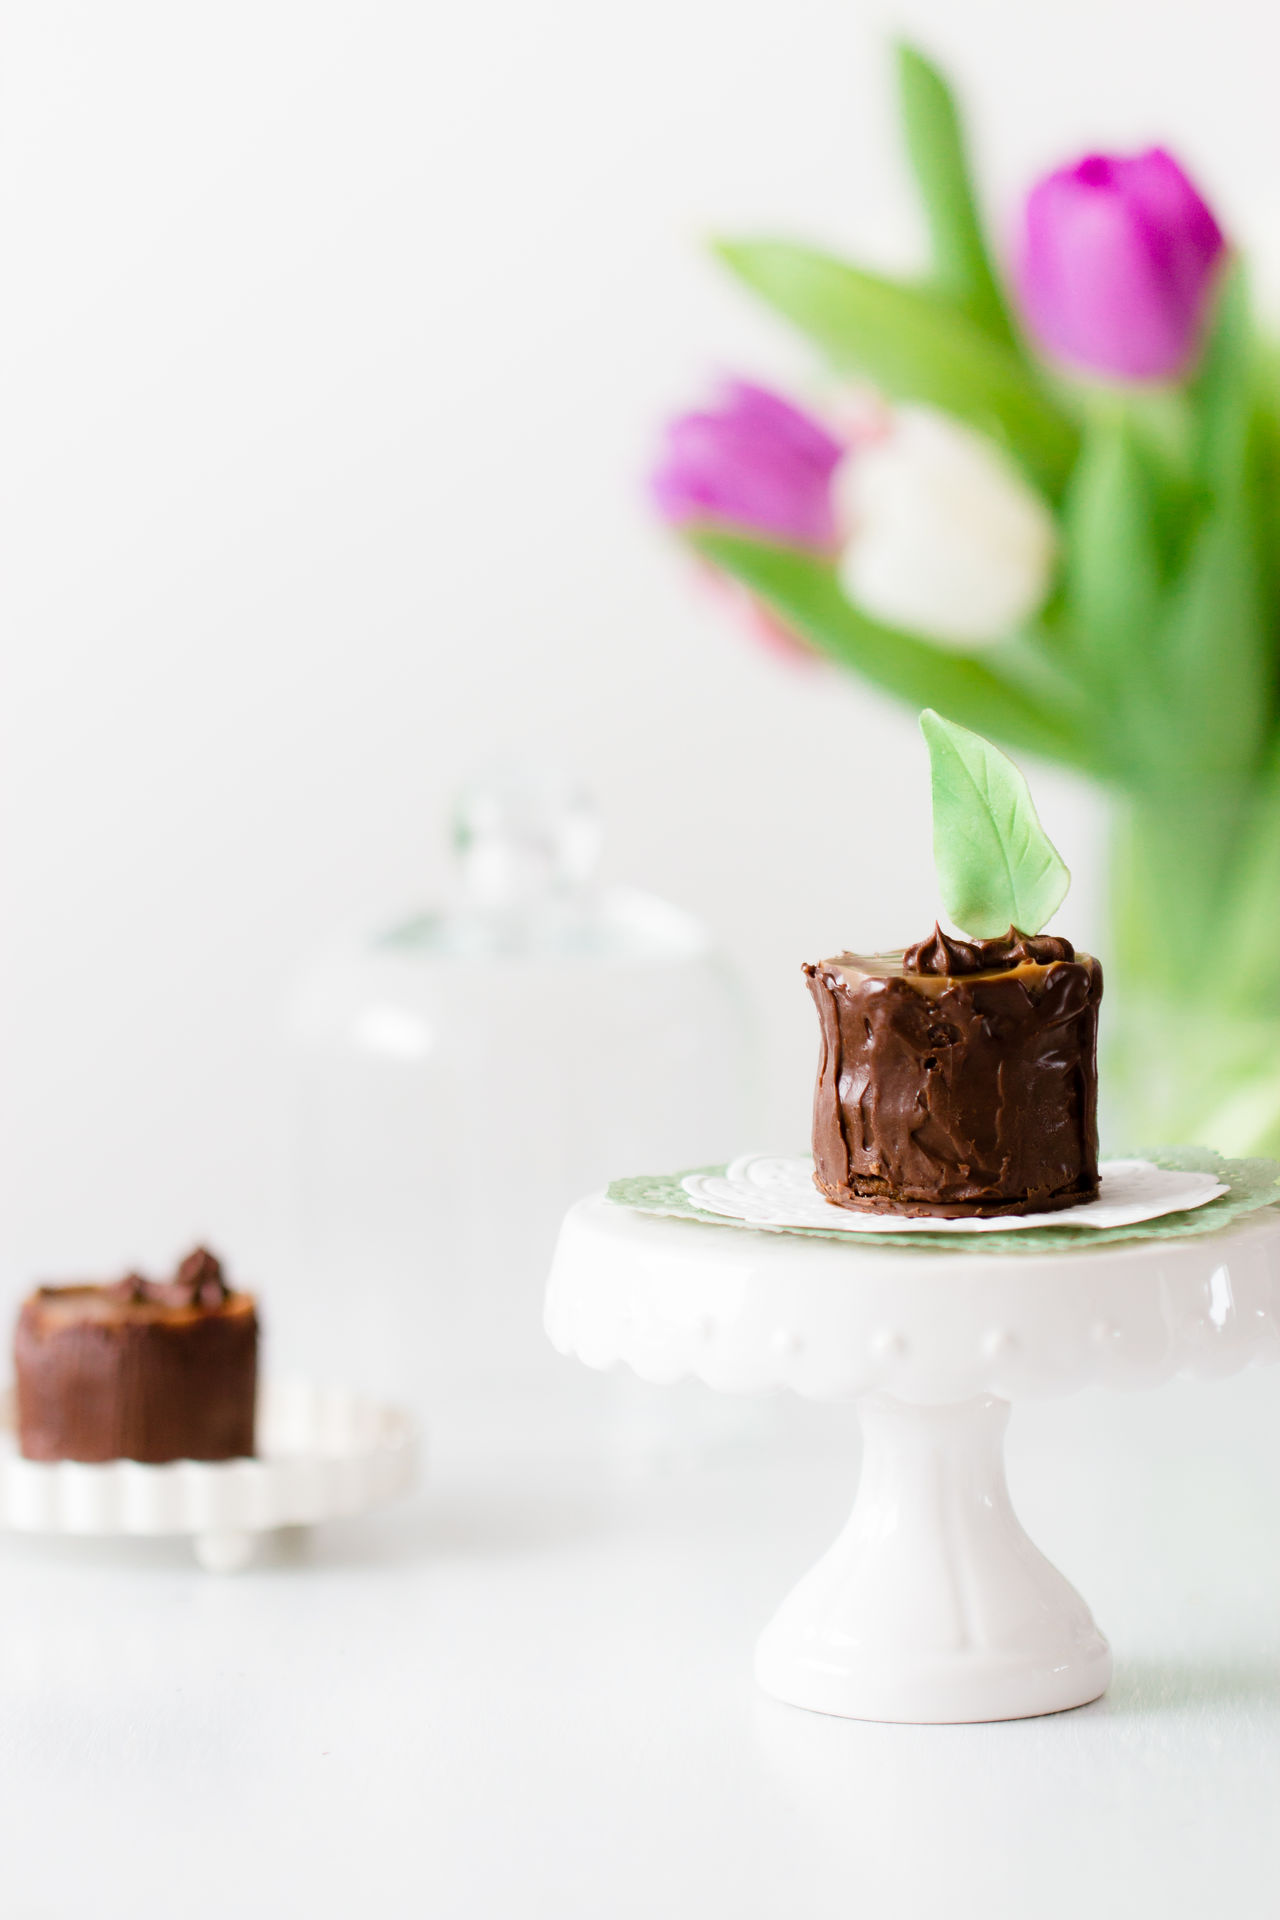 tiny chocolate cakes on white table Cake Chocolate Close-up Day Dessert Flower Food Food And Drink Freshness Indoors  Indulgence No People Plate Ready-to-eat Sweet Food Table Temptation Unhealthy Eating